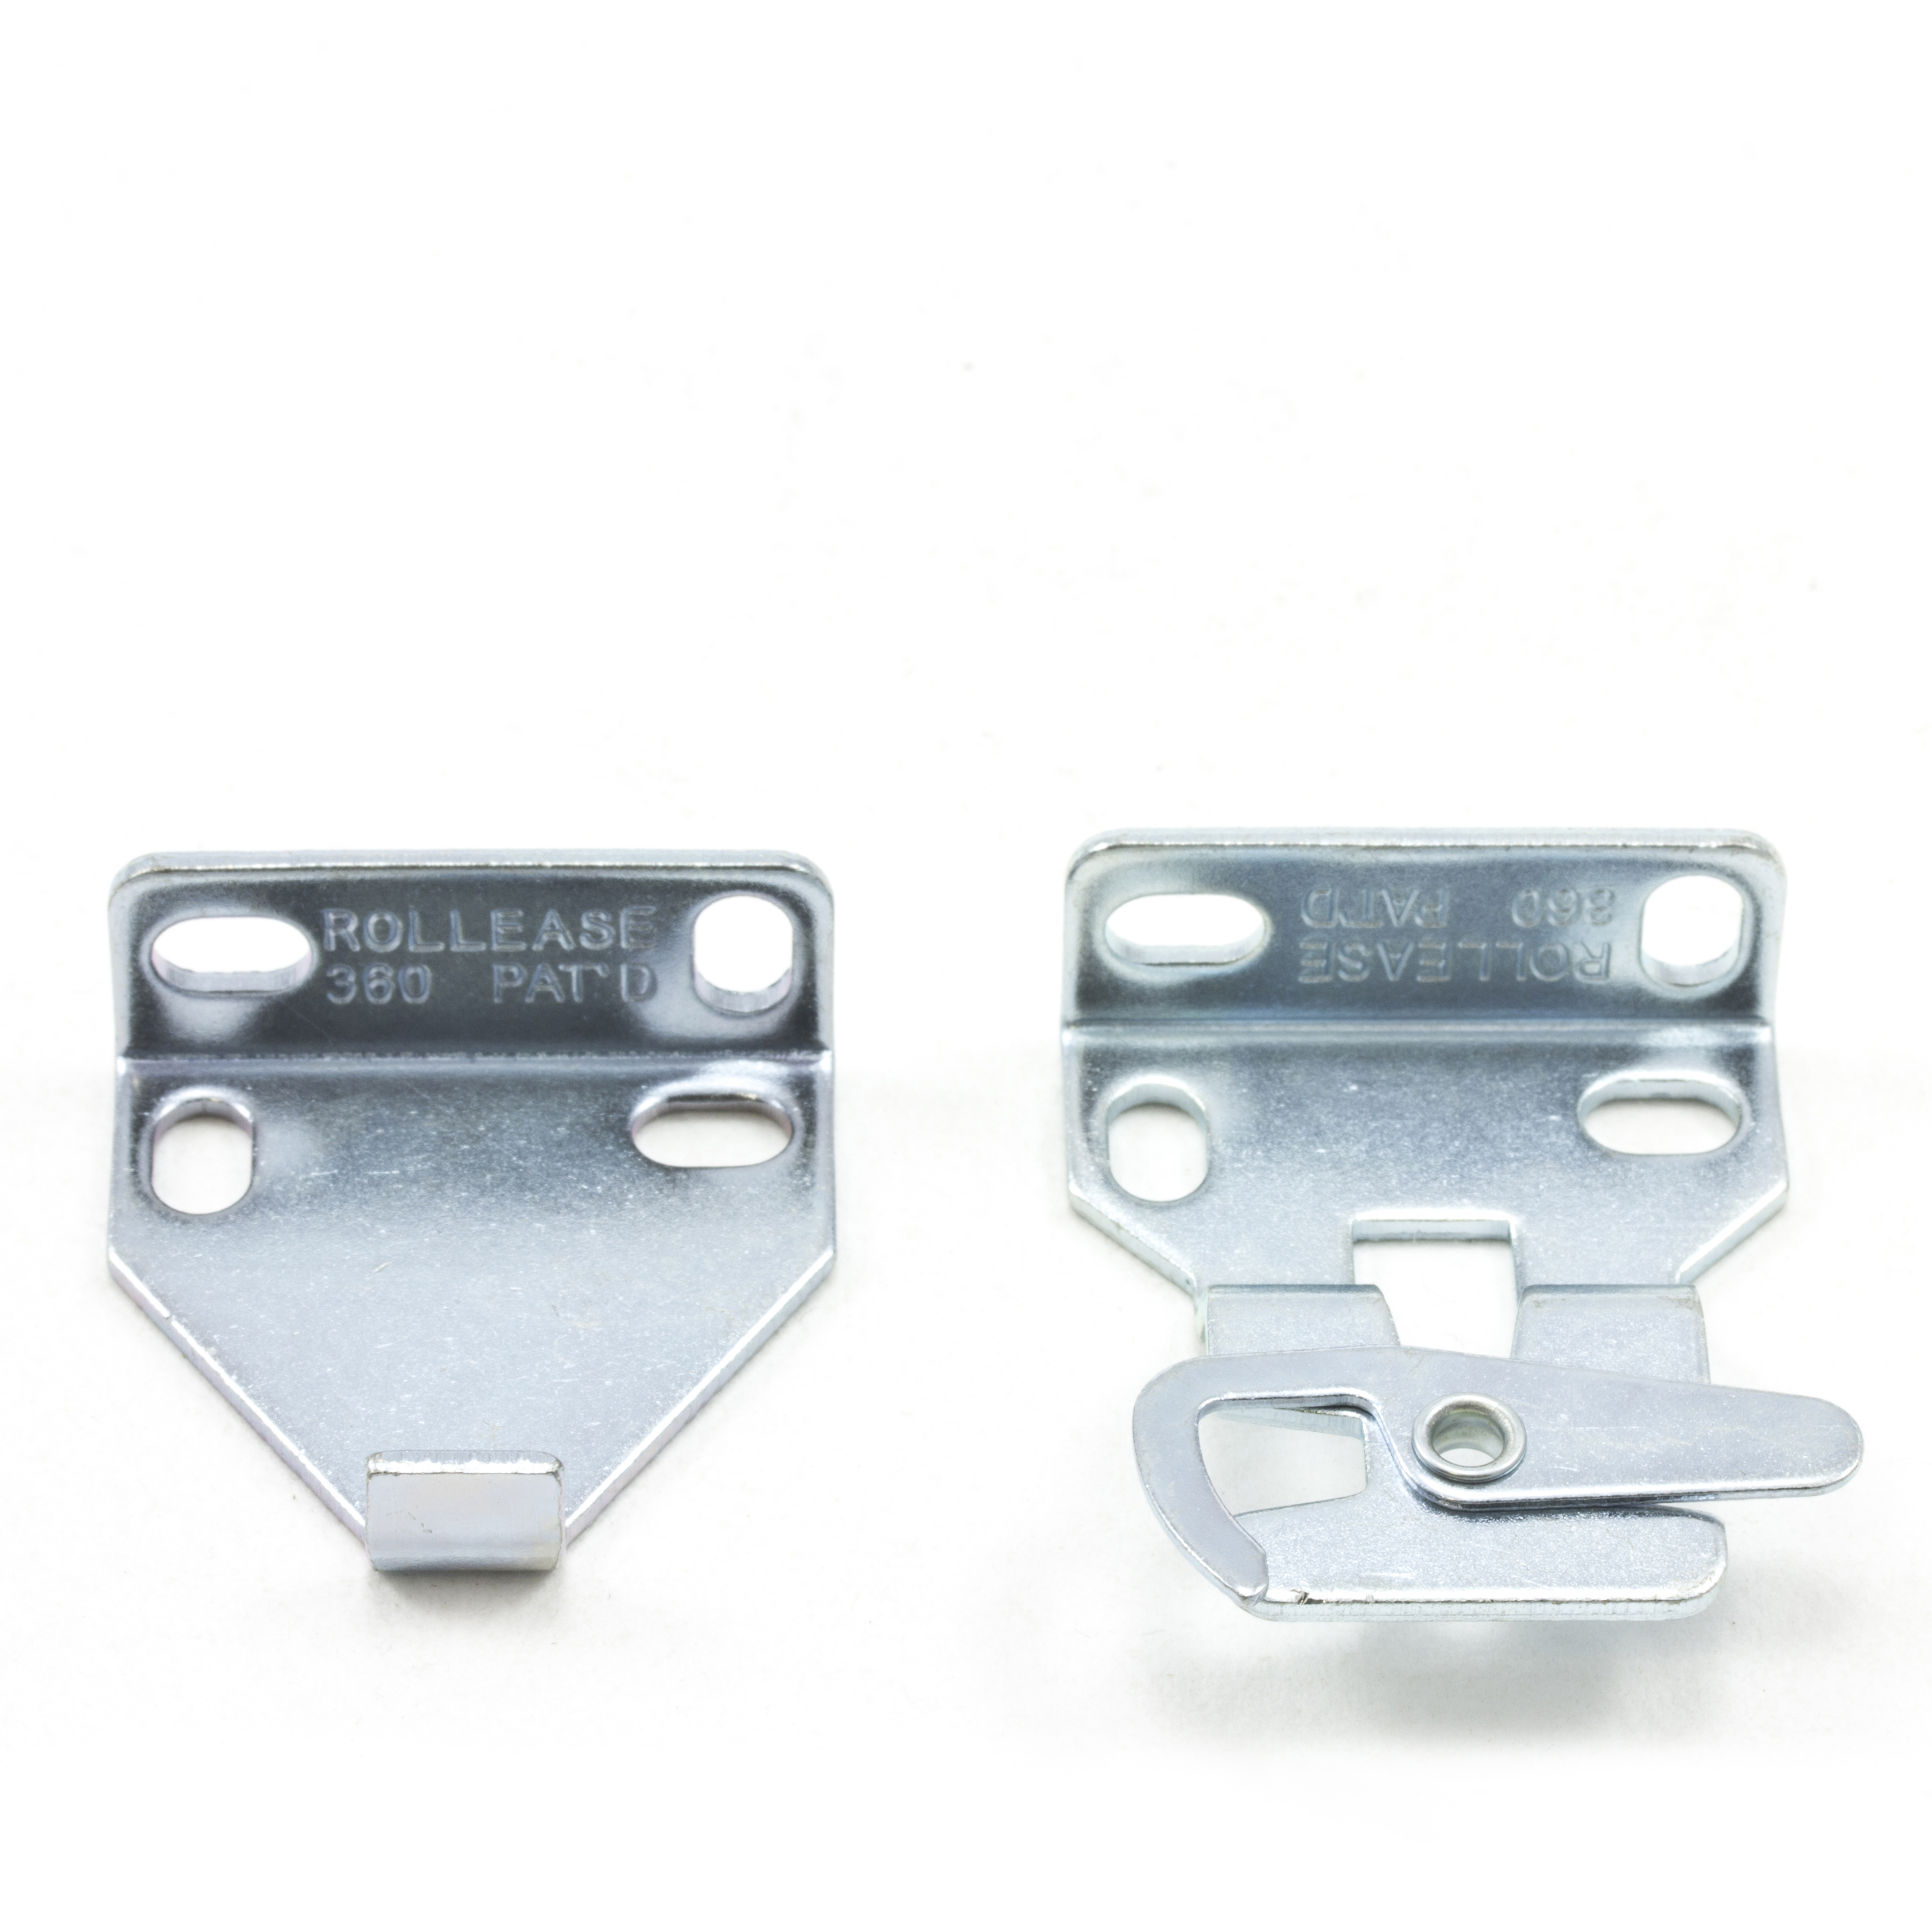 RollEase Mounting Bracket for R-3/ R-8 Clutch 1-1/2